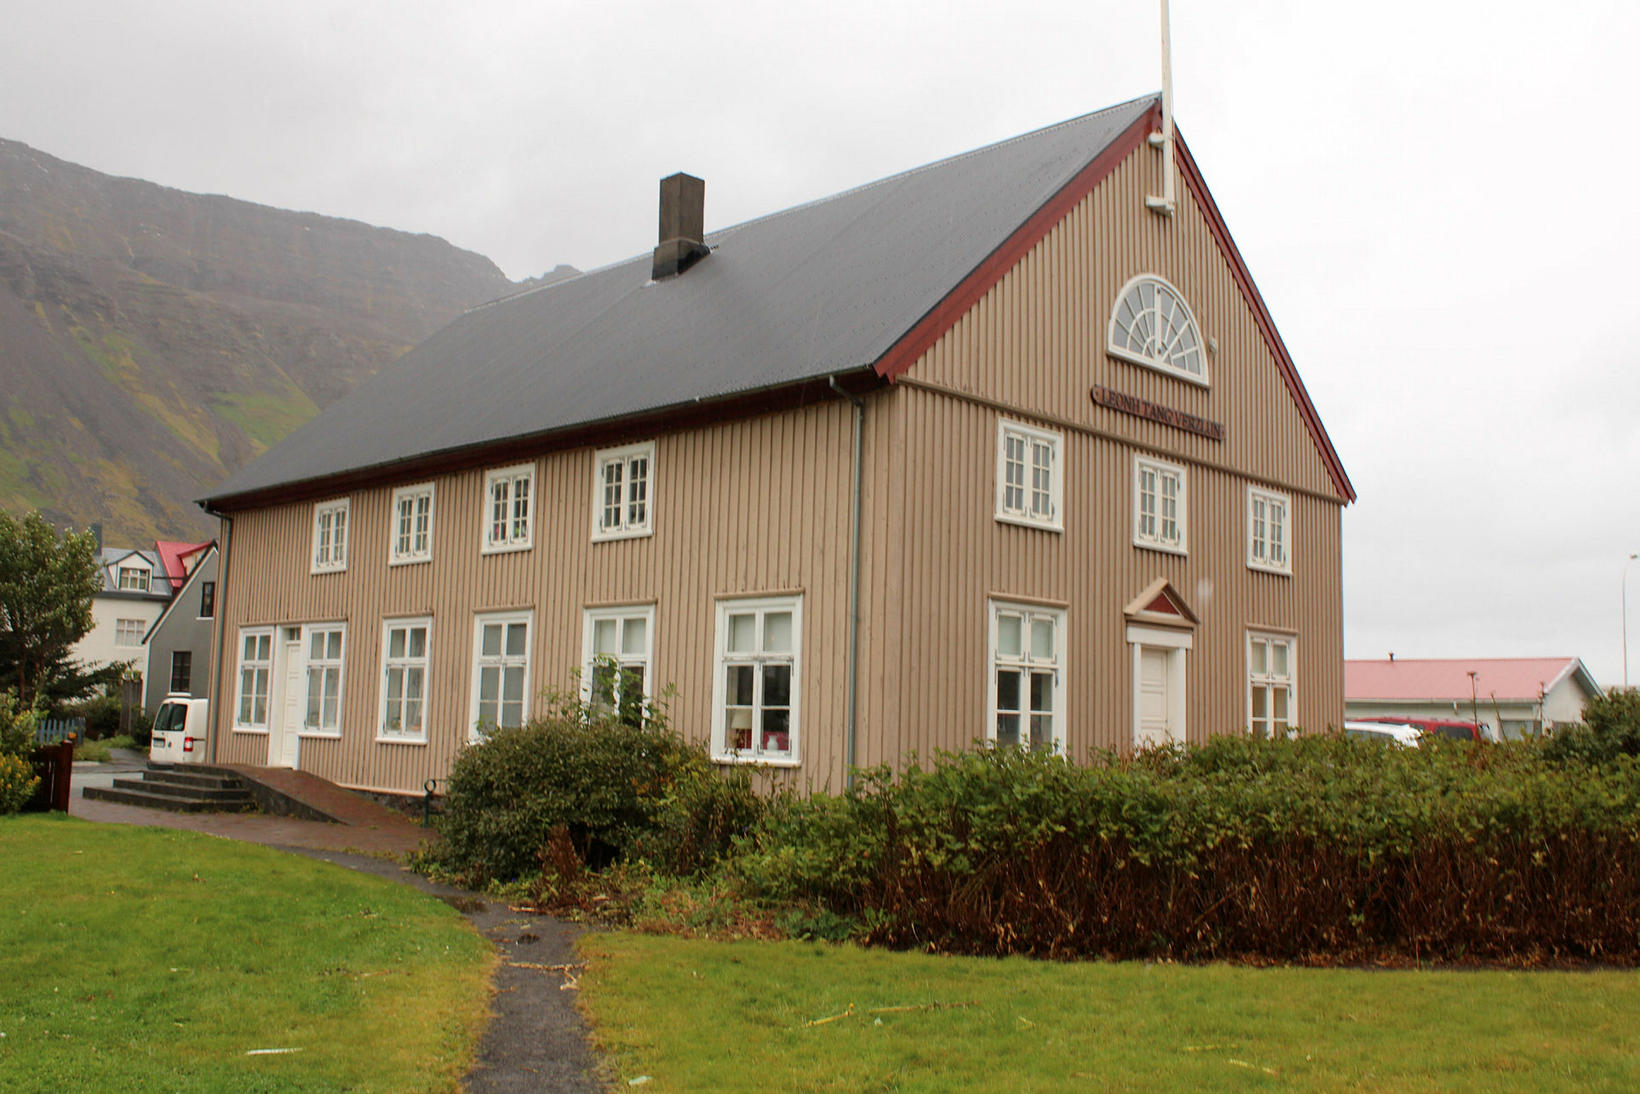 Búðin, the building that houses the doll collection.